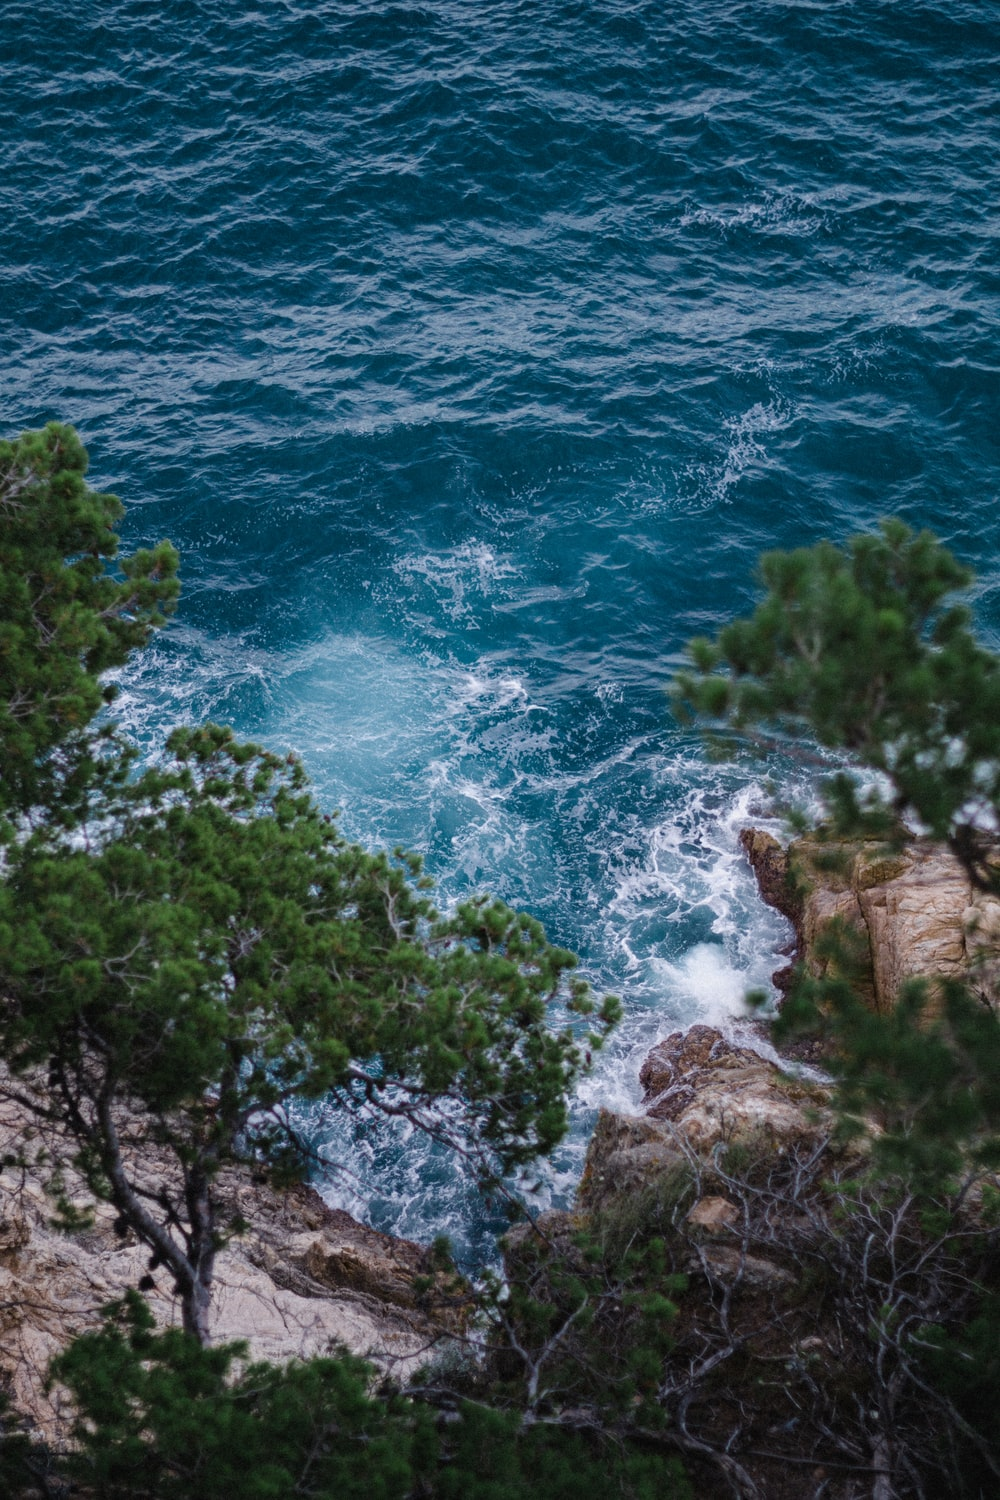 green trees beside blue sea during daytime